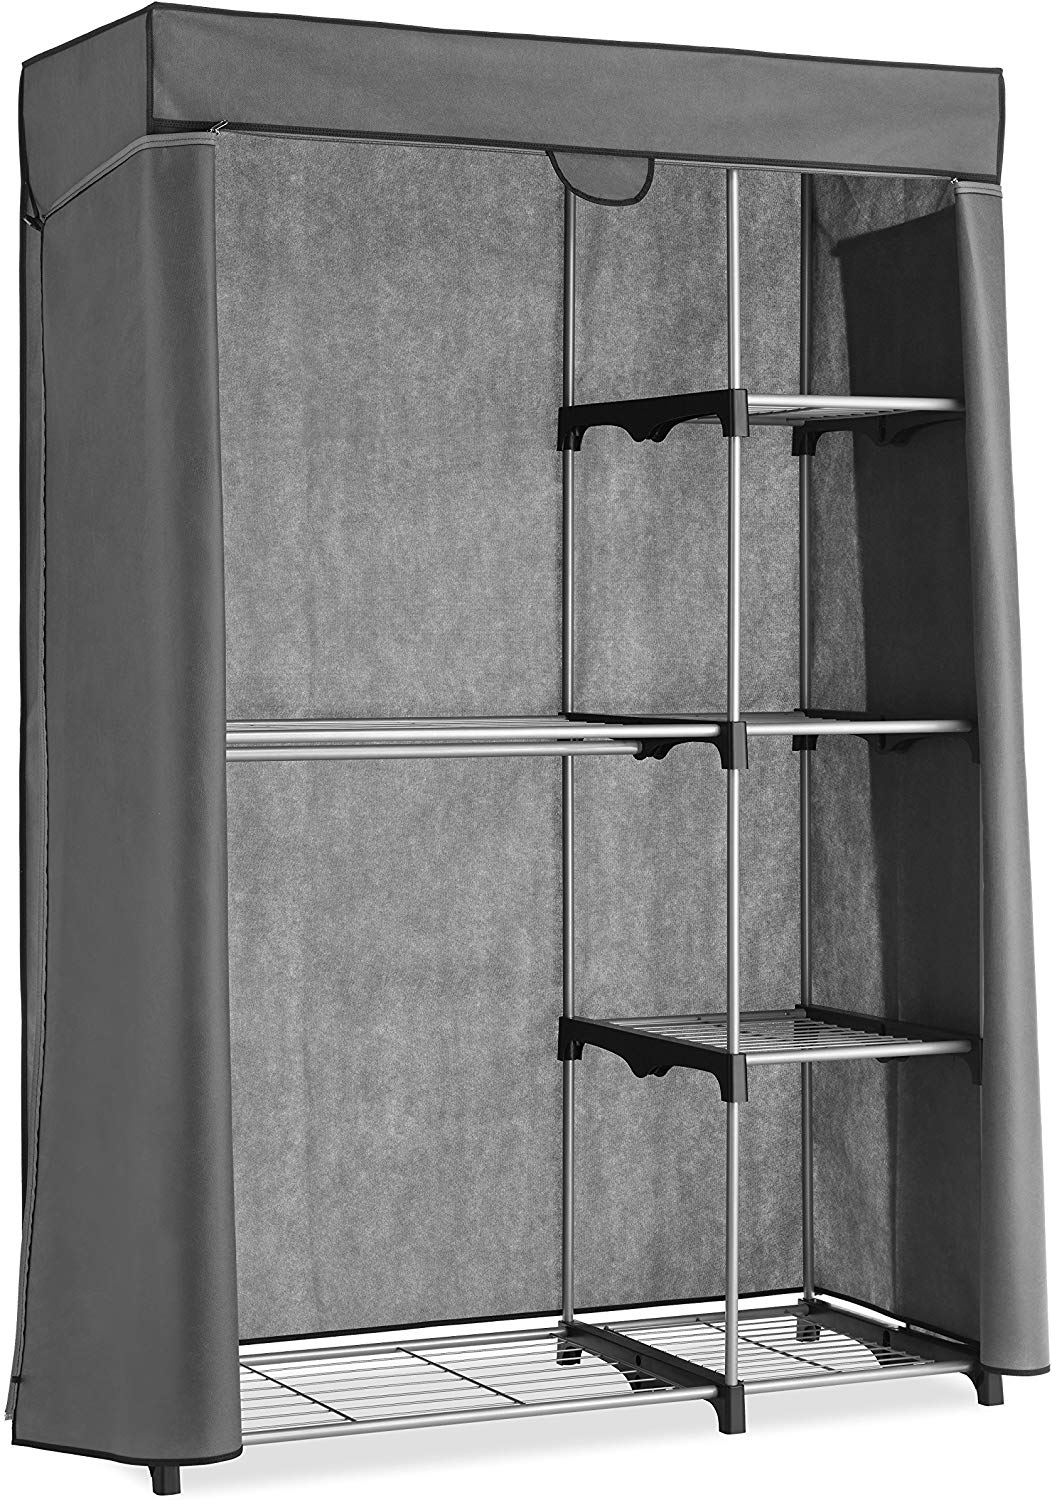 Super Deal Portable Washer